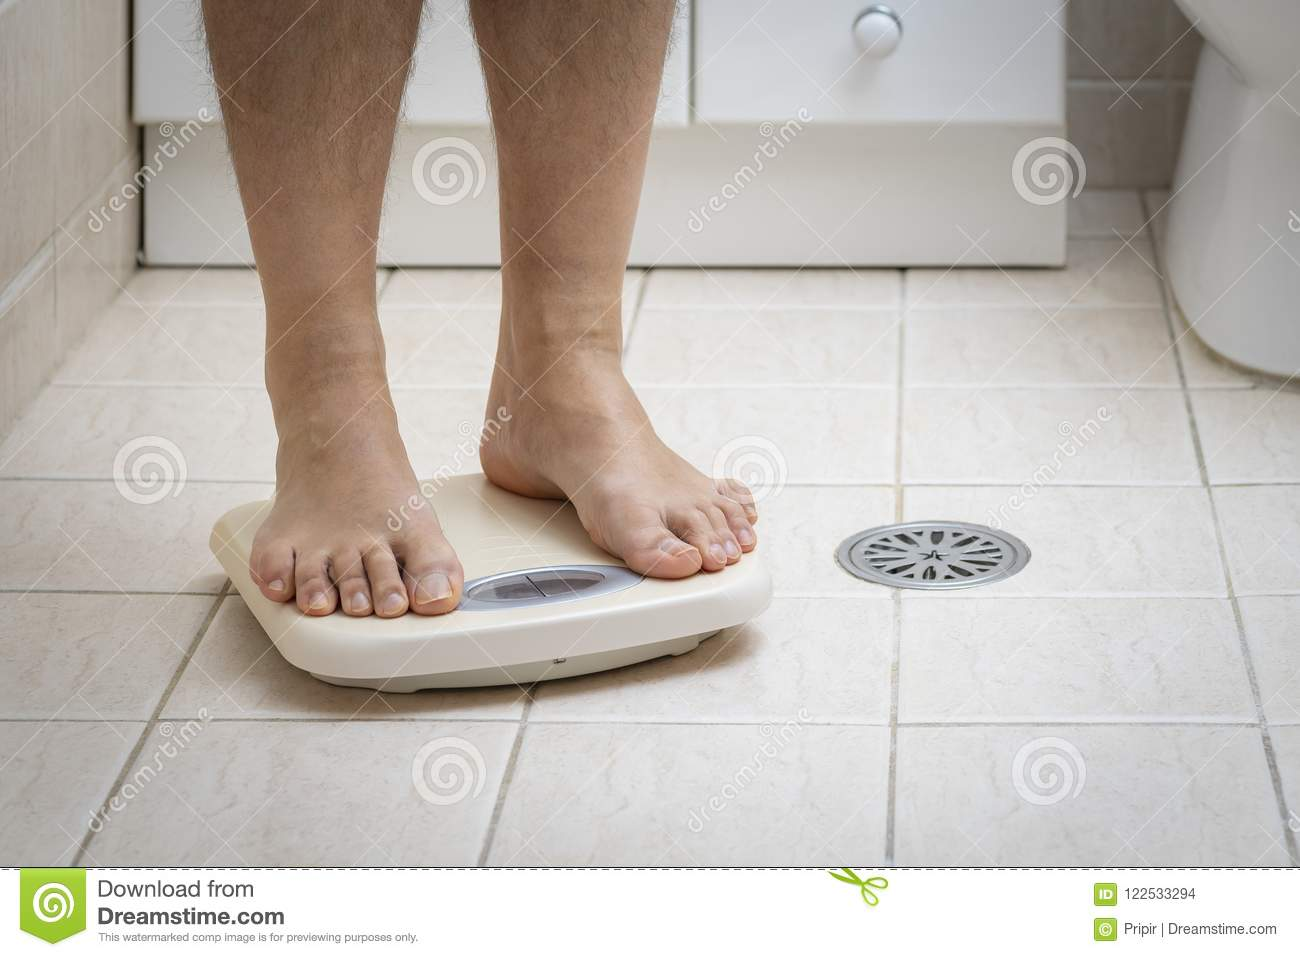 Cropped image of man feet standing on weigh scale